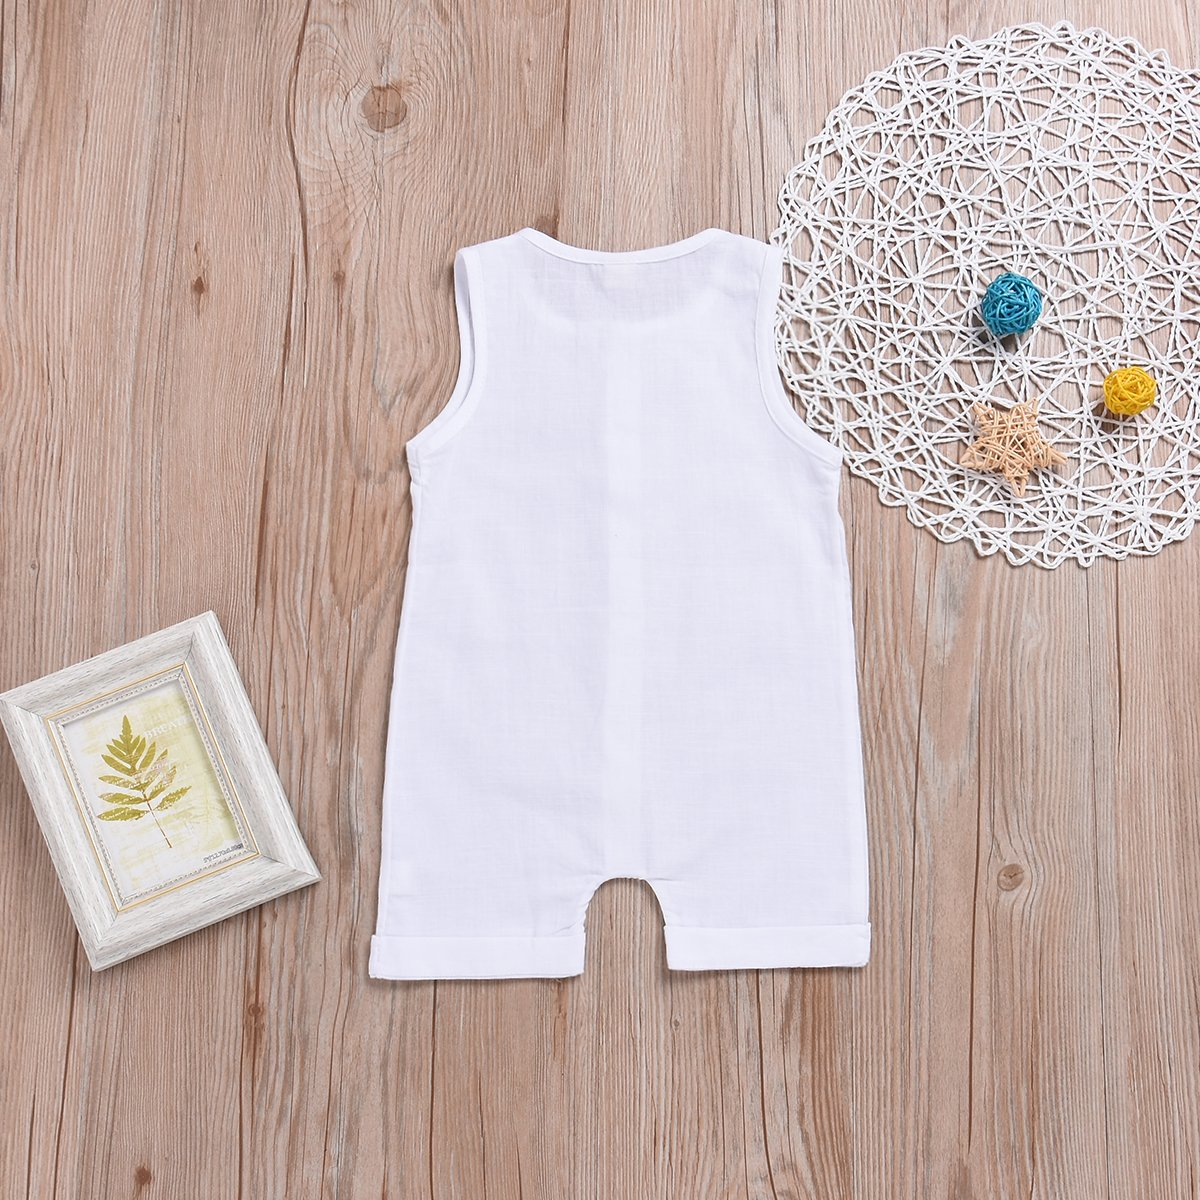 One Piece Outfits Baby Solid White Rompers with Button Kids Sleeveless Playsuit Jumpsuits Pants Cotton Clothing